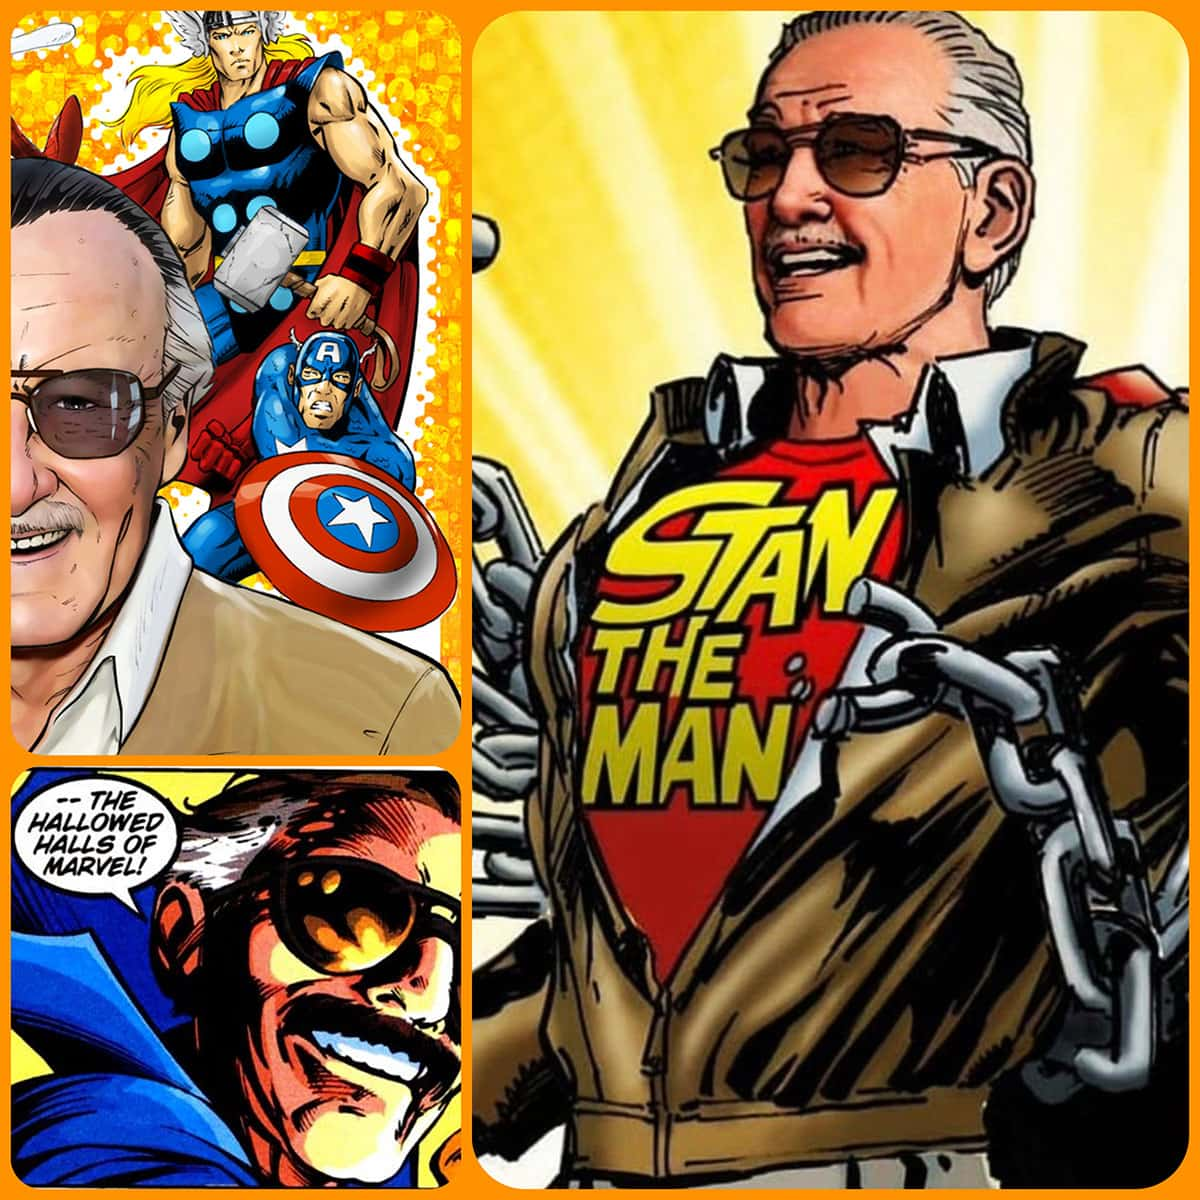 Stan Lee Marvel by Runway Magazine